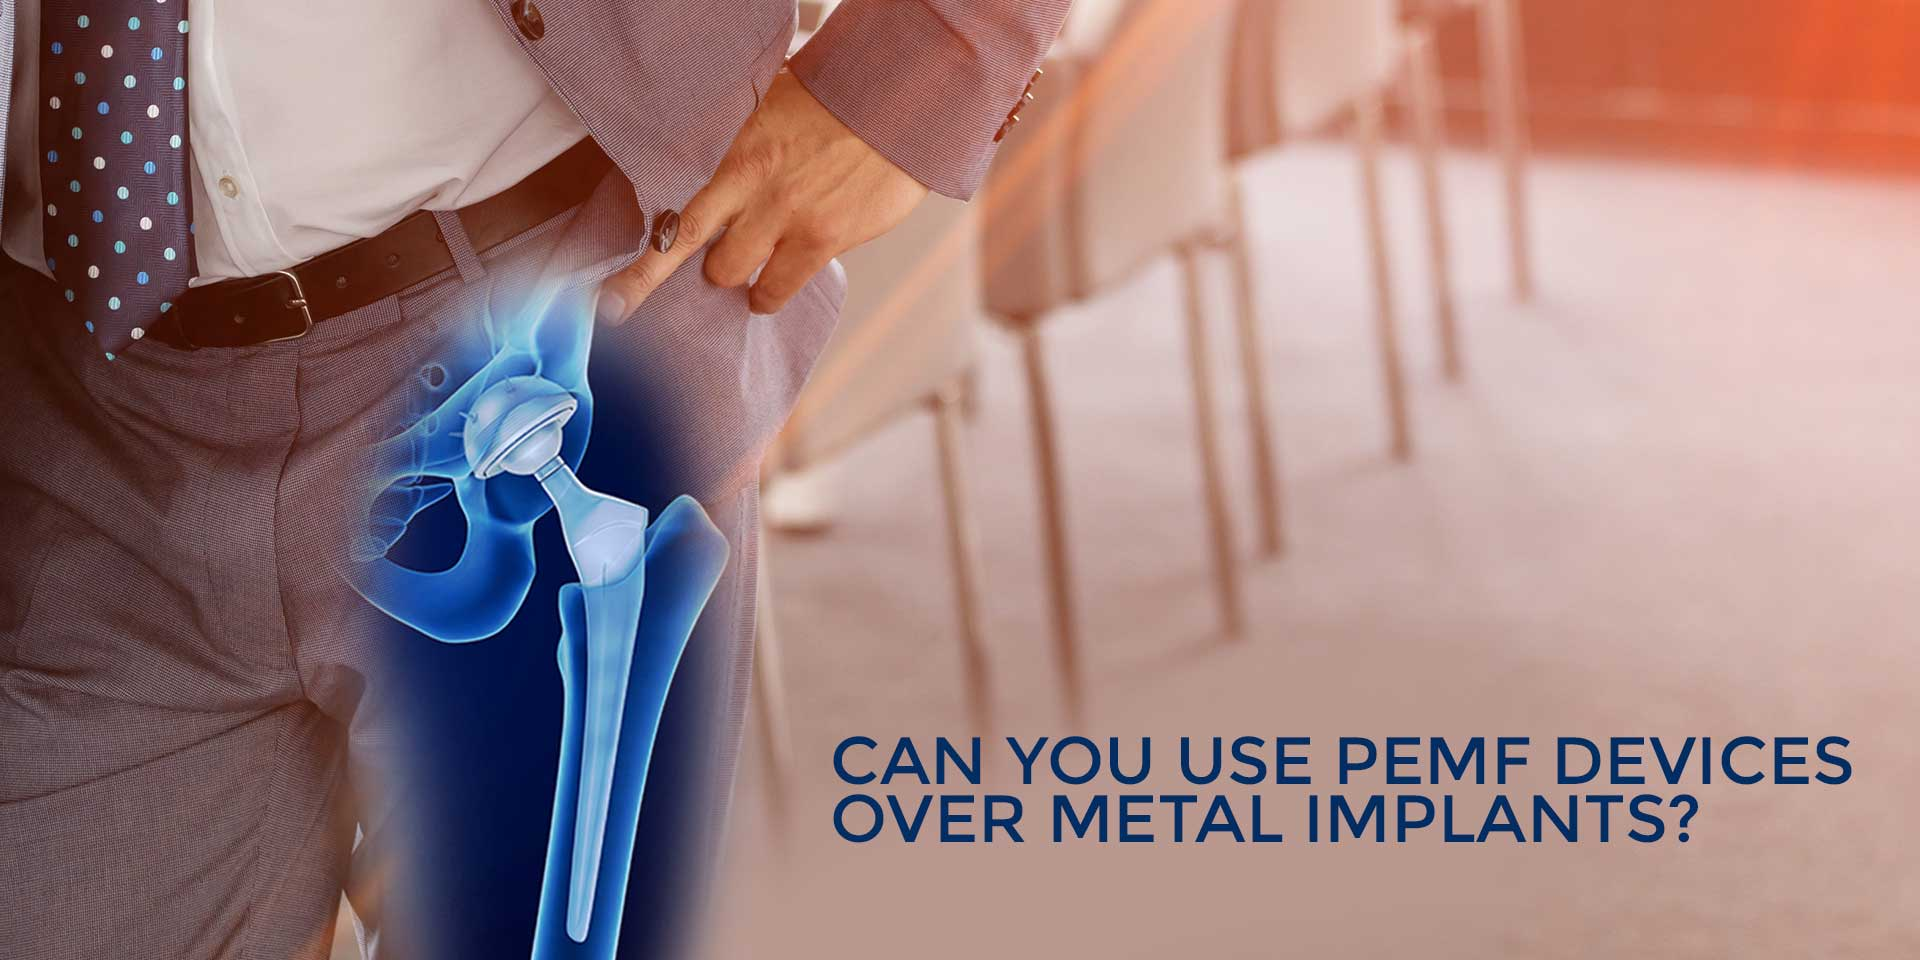 Can You Use PEMF Devices Over Metal Implants?